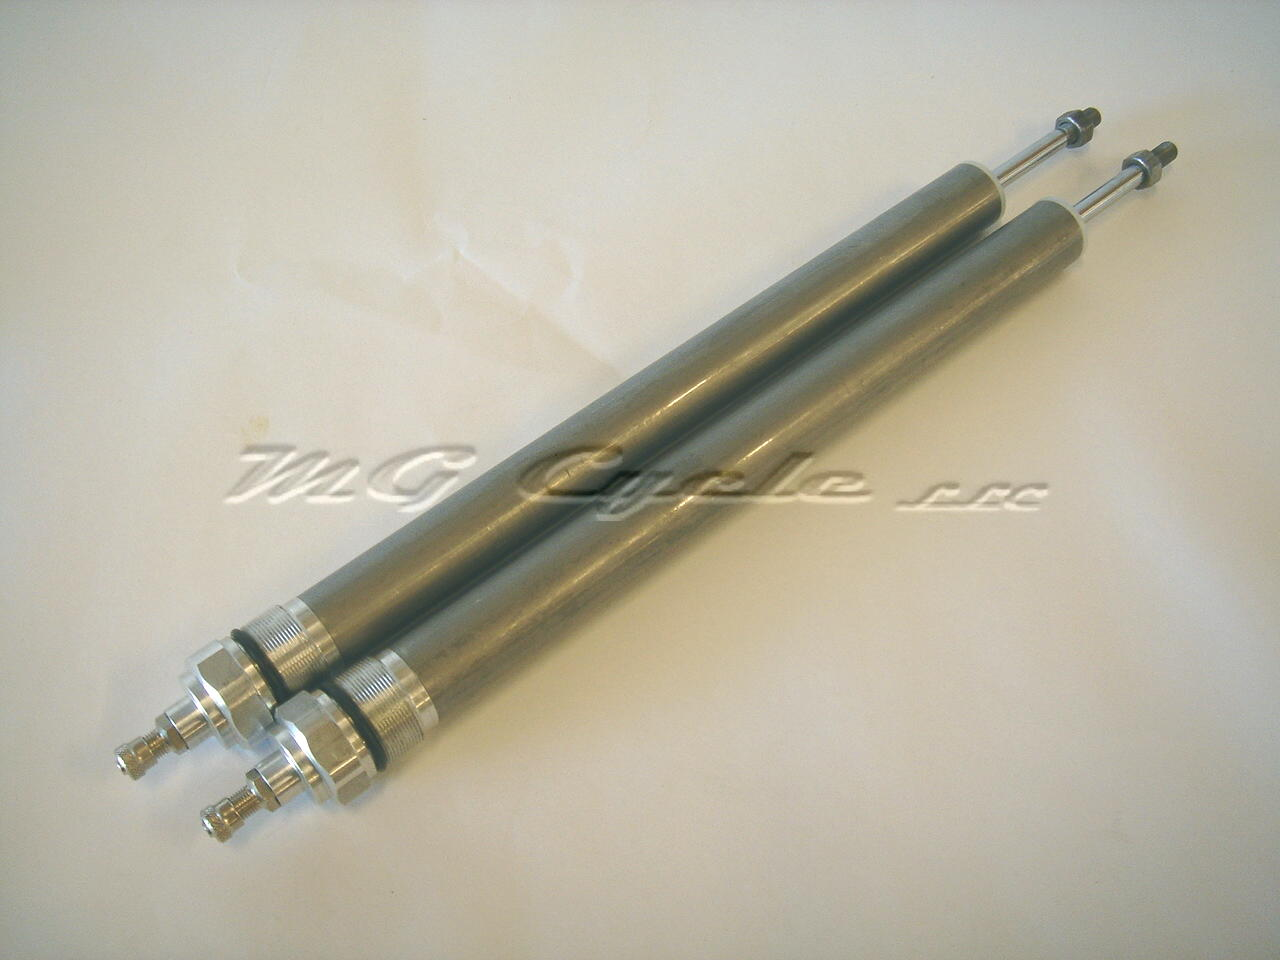 FAC fork damper set for V50 and V50 II